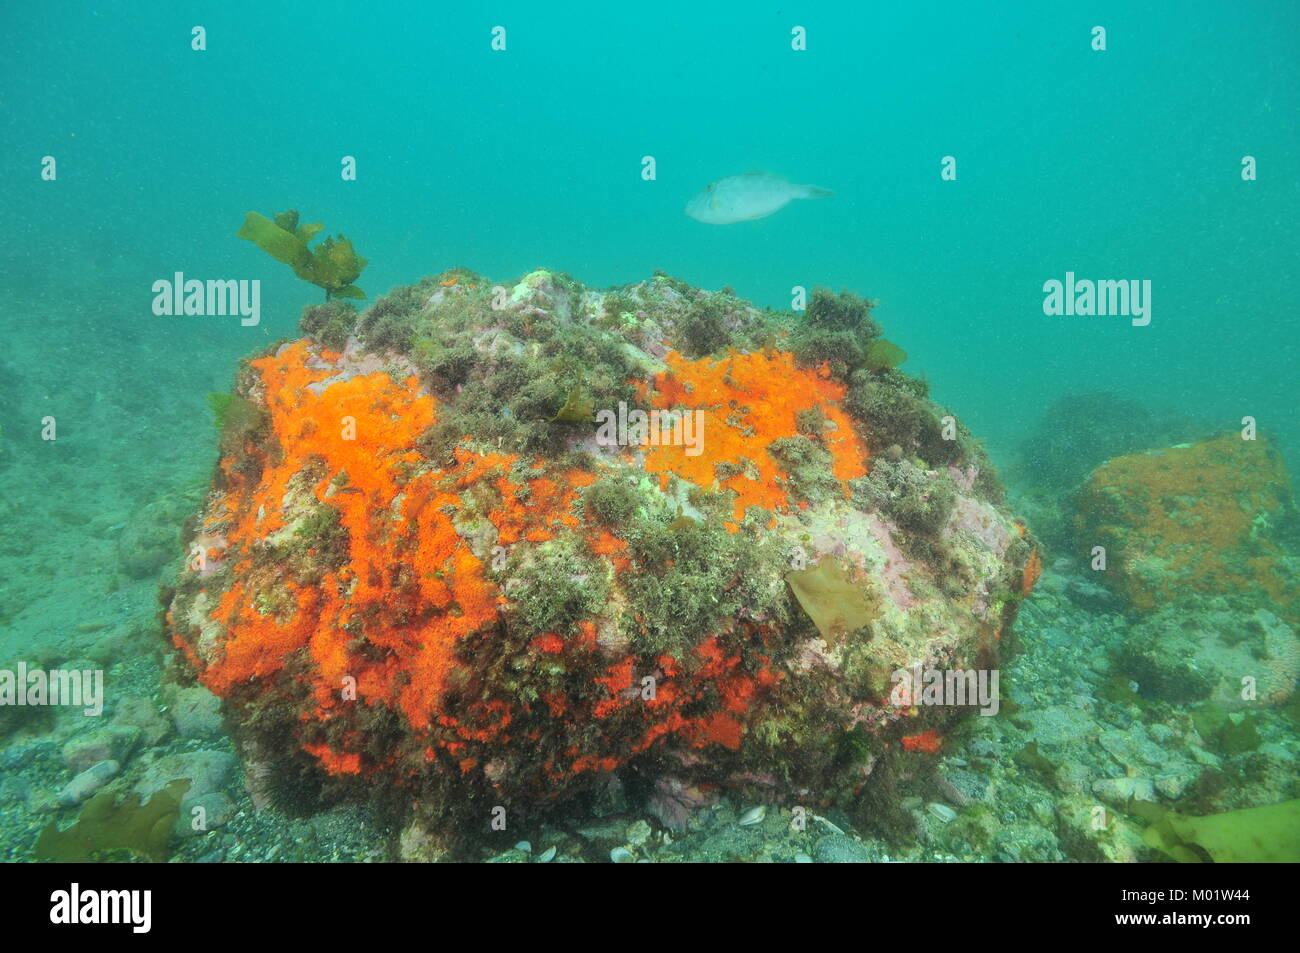 Large boulder covered with colorful encrusting sponges but missing vegetation on bottom in murky water. - Stock Image